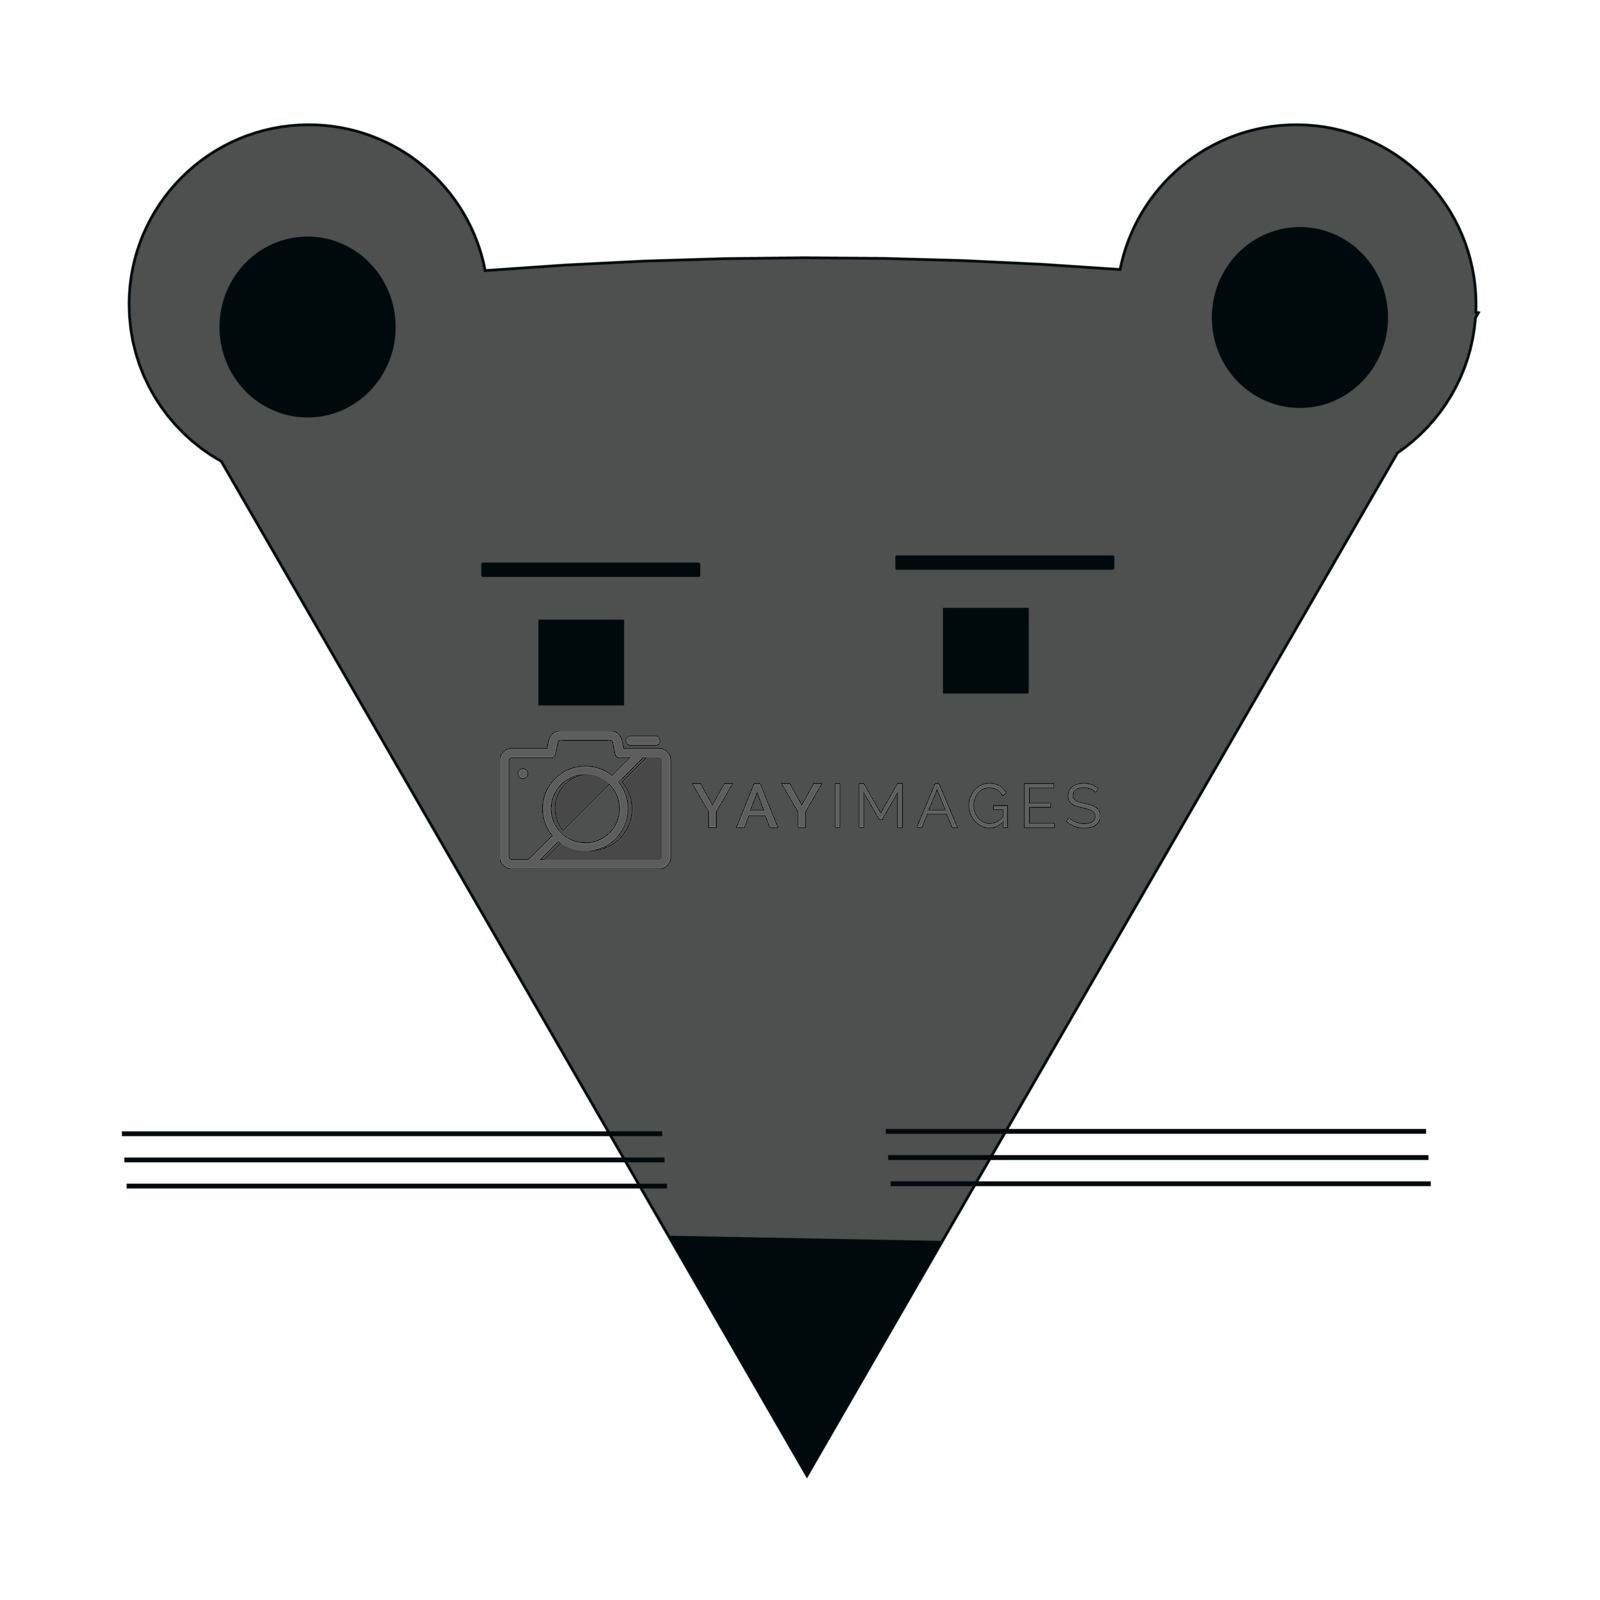 flat icon or icon in the form of a mouse face. Vector illustration.